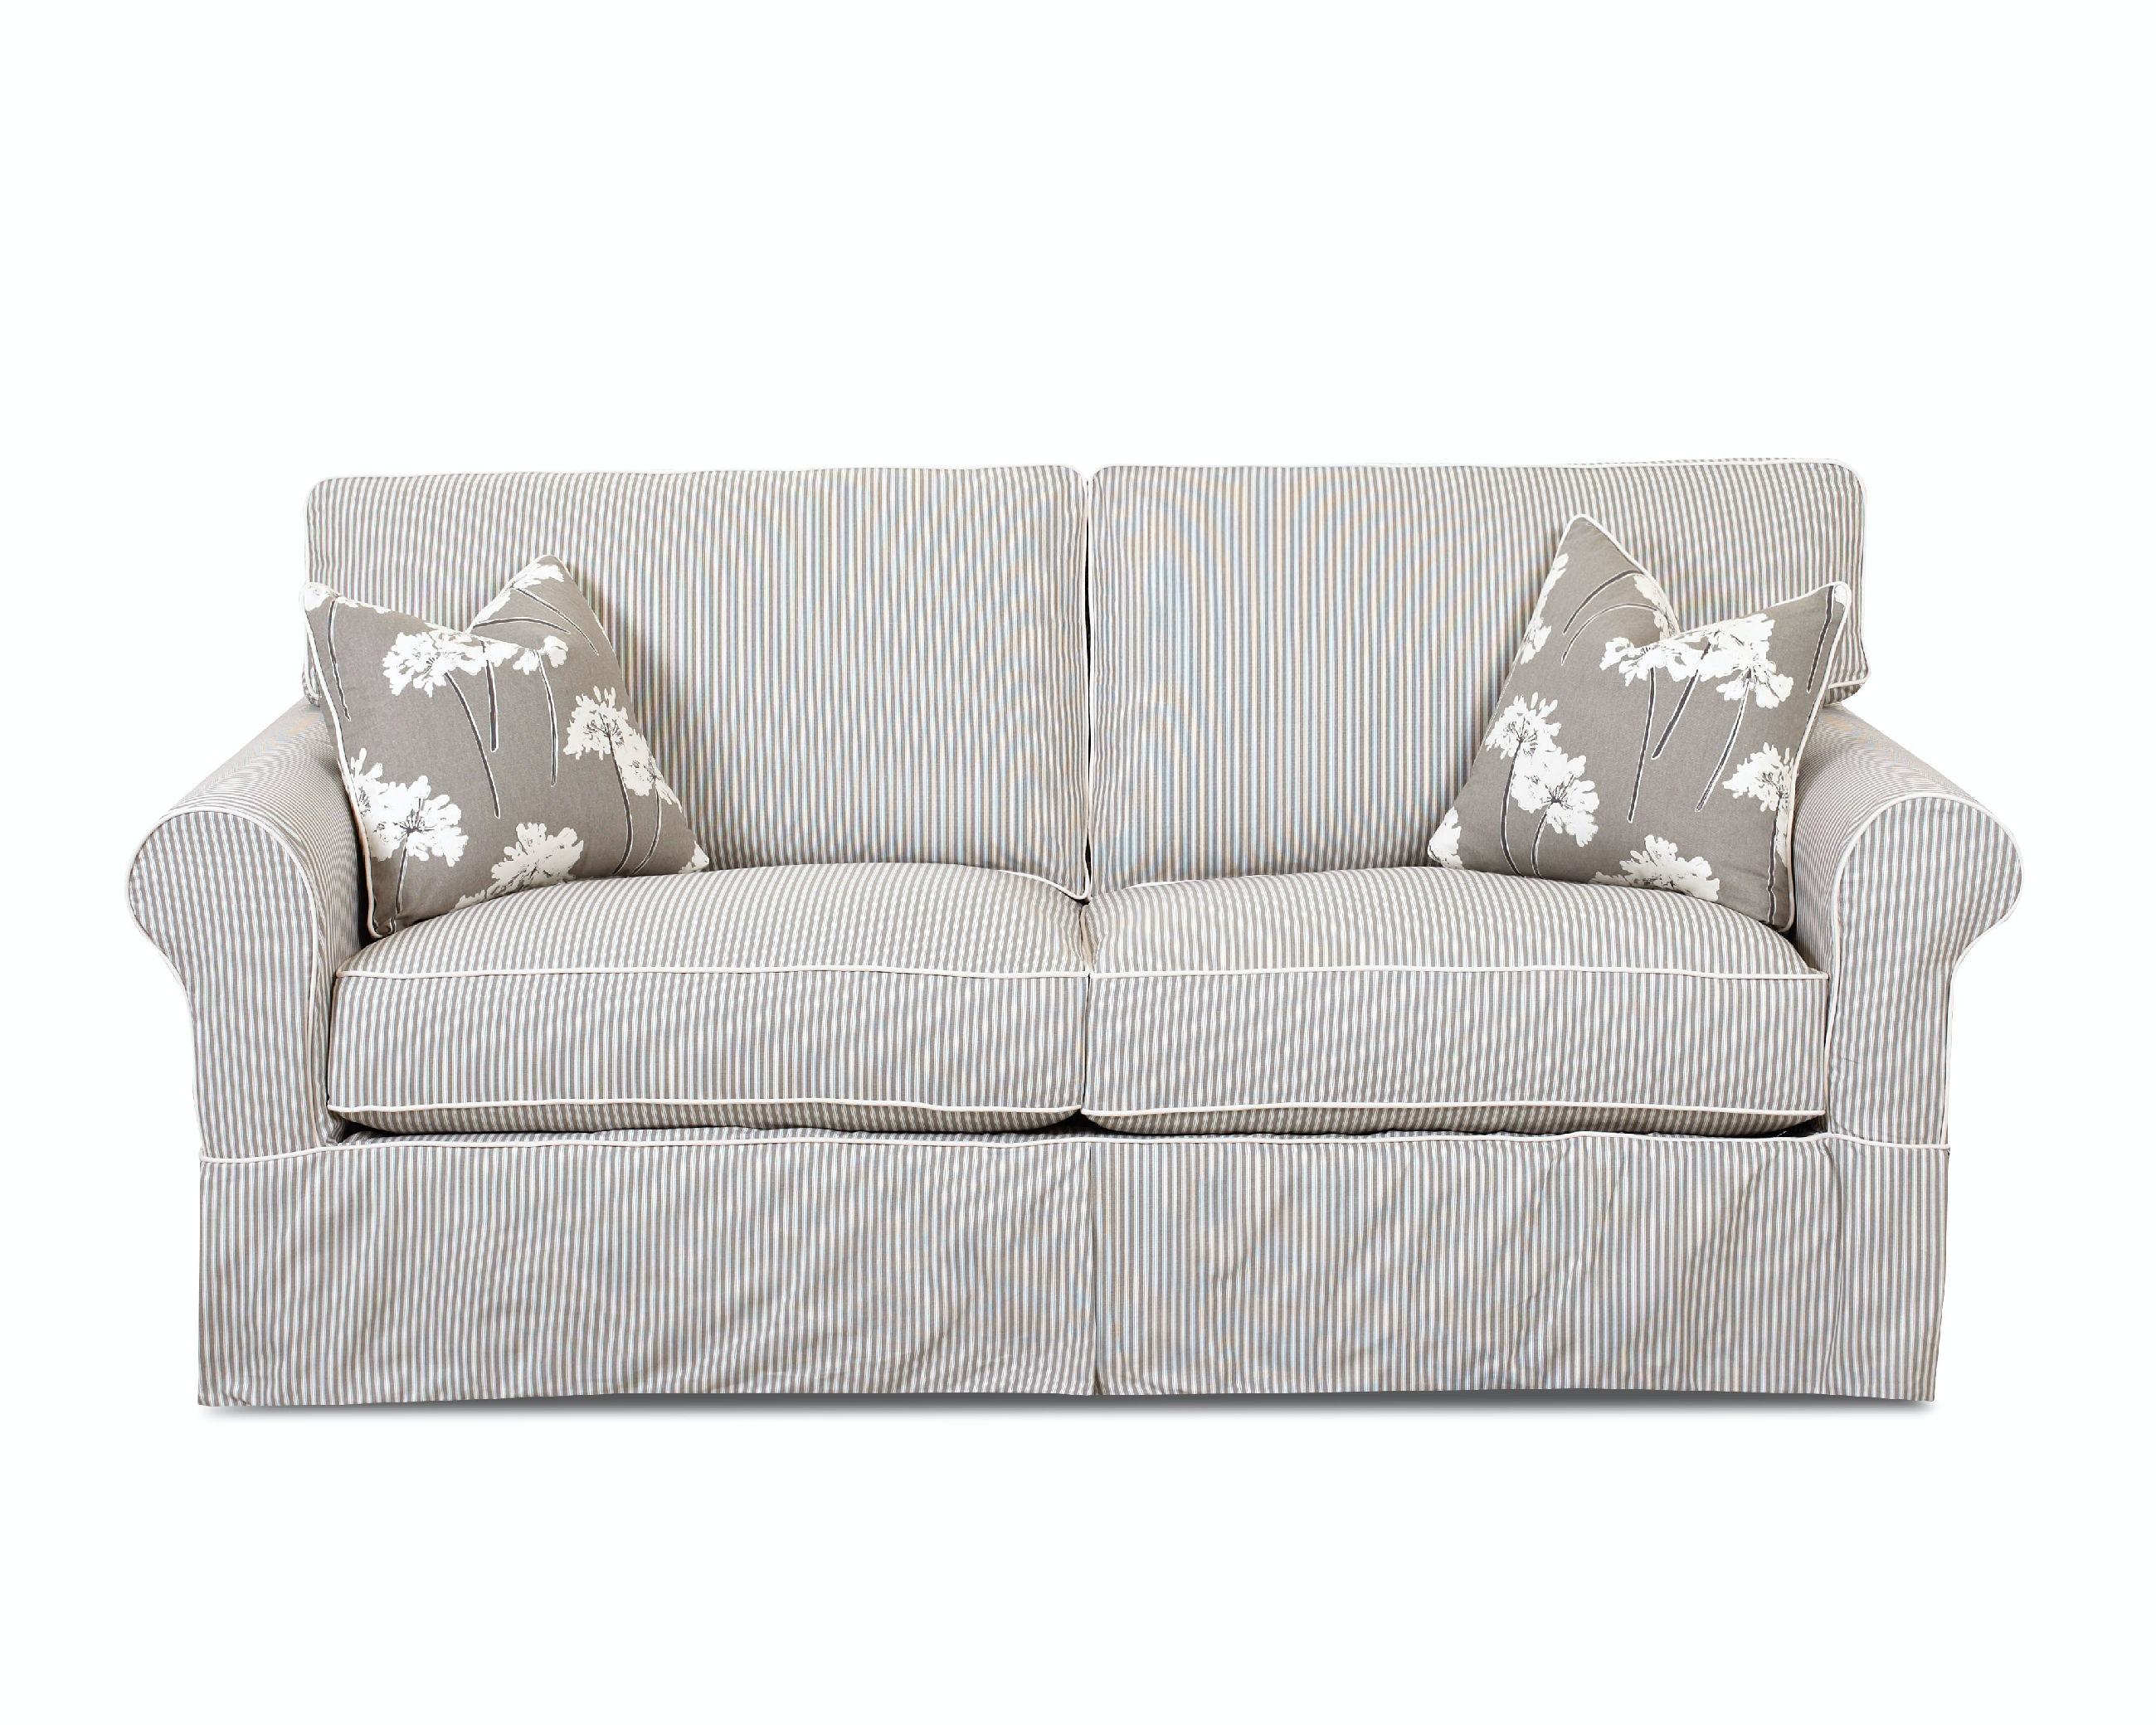 living room slipcovers with leather furniture american factory direct baton rouge la klaussner southern shores slipcover